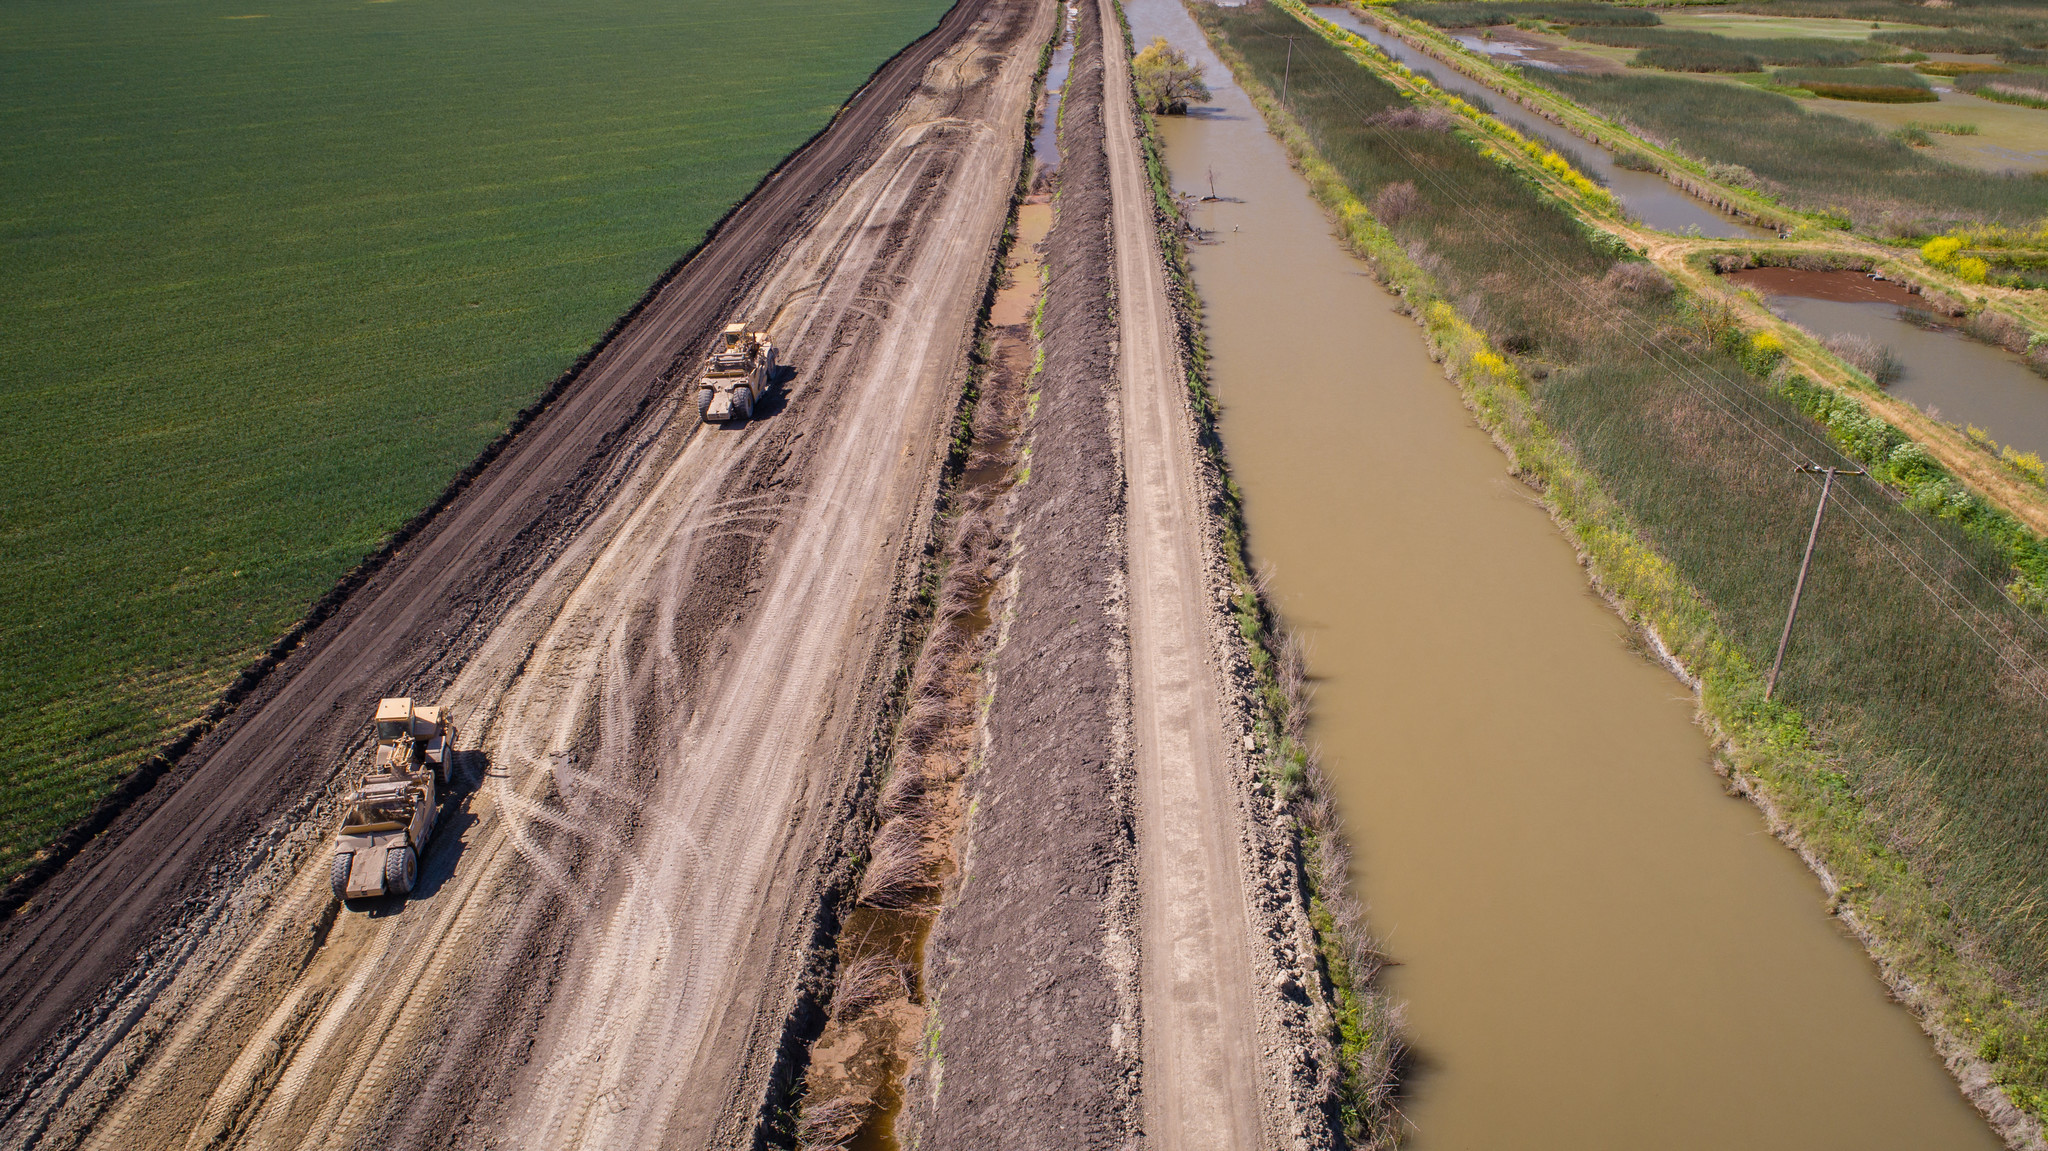 Earth movers carry dirt from a farm field to shore up levees at the Kings River and Fresno Slough in preparation for coming snowmelt.